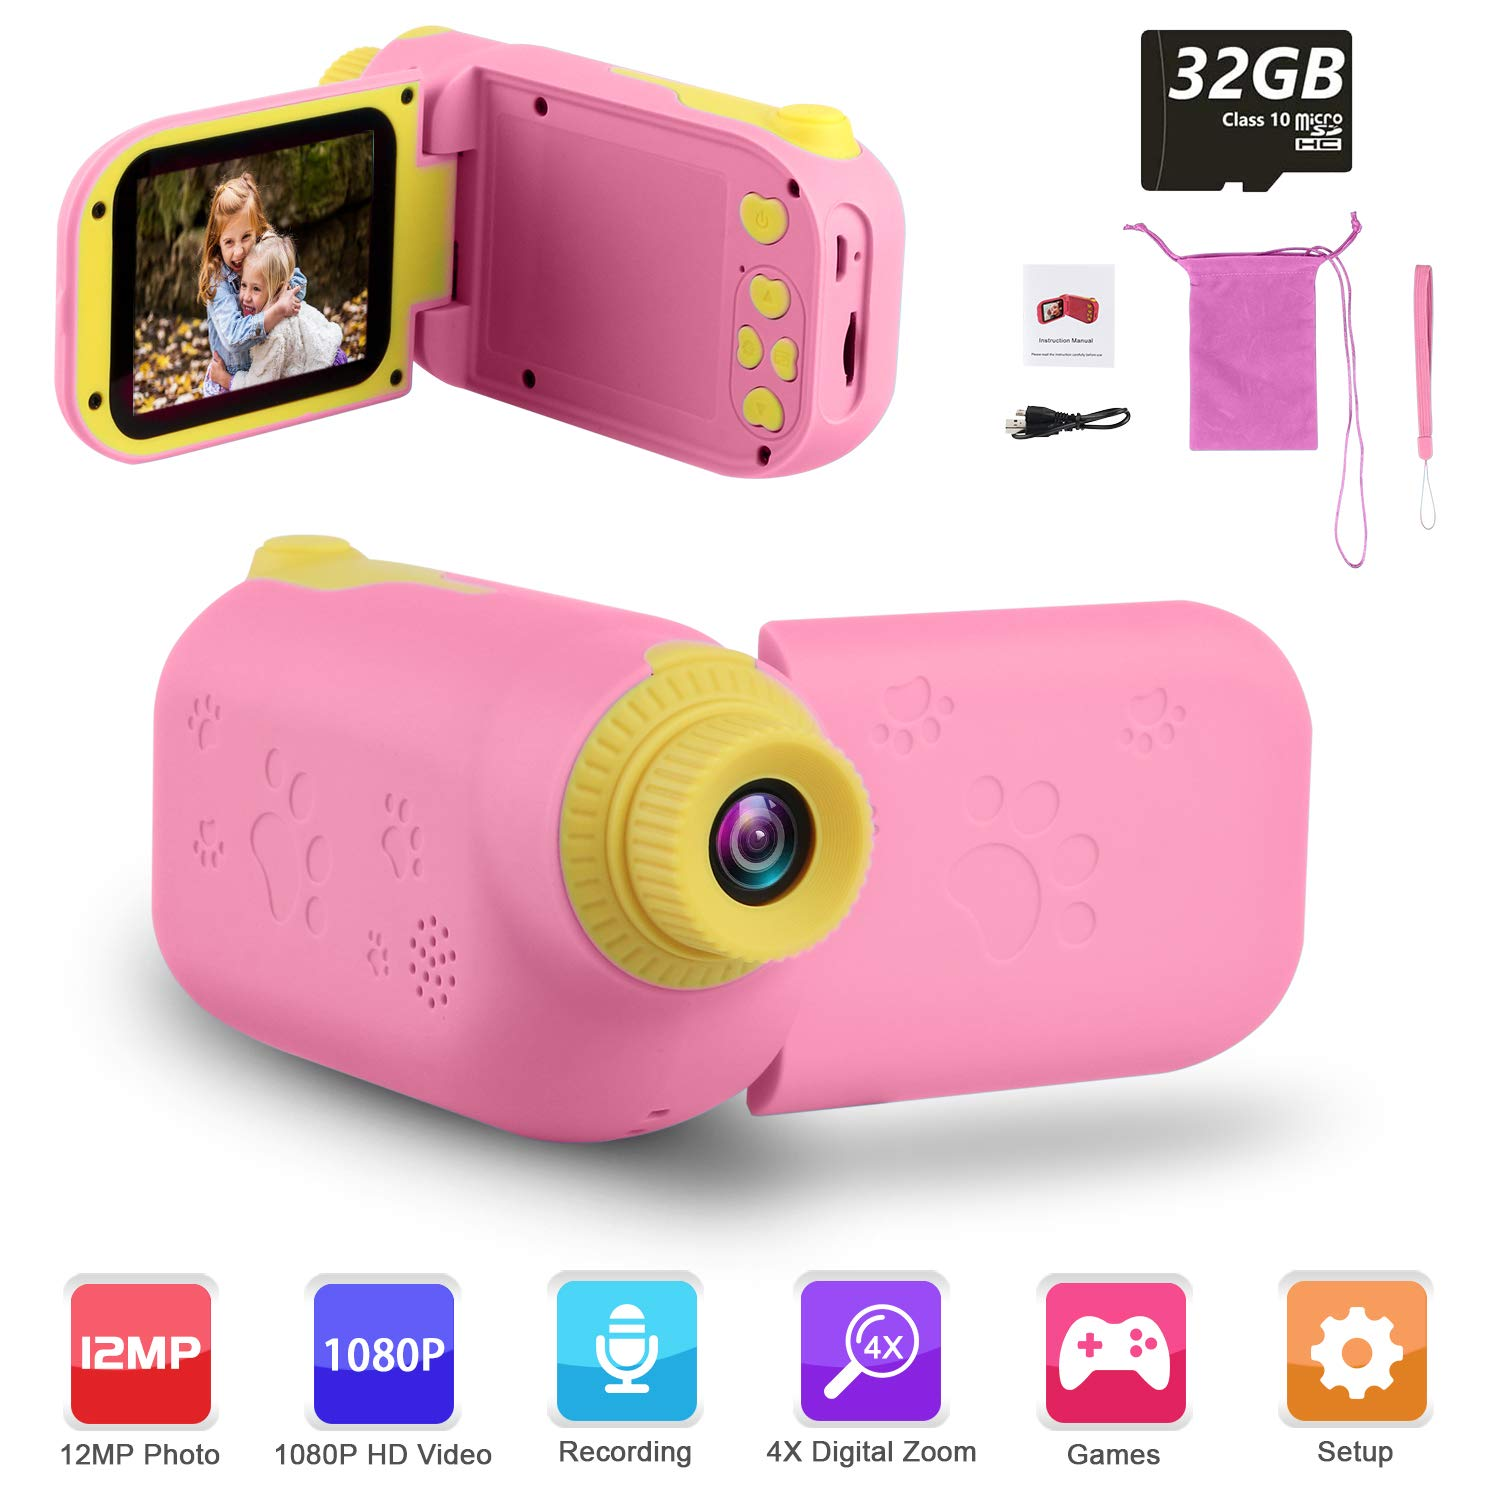 """GKTZ Video Camera Camcorder Digital for Kids, Children's Toys DV Cameras Recorder with 2.4"""" 1080P FHD Screen for Age 3 -10 Year Old Boys Girls Birthday Gifts ,Including 32GB SD Card - Pink"""